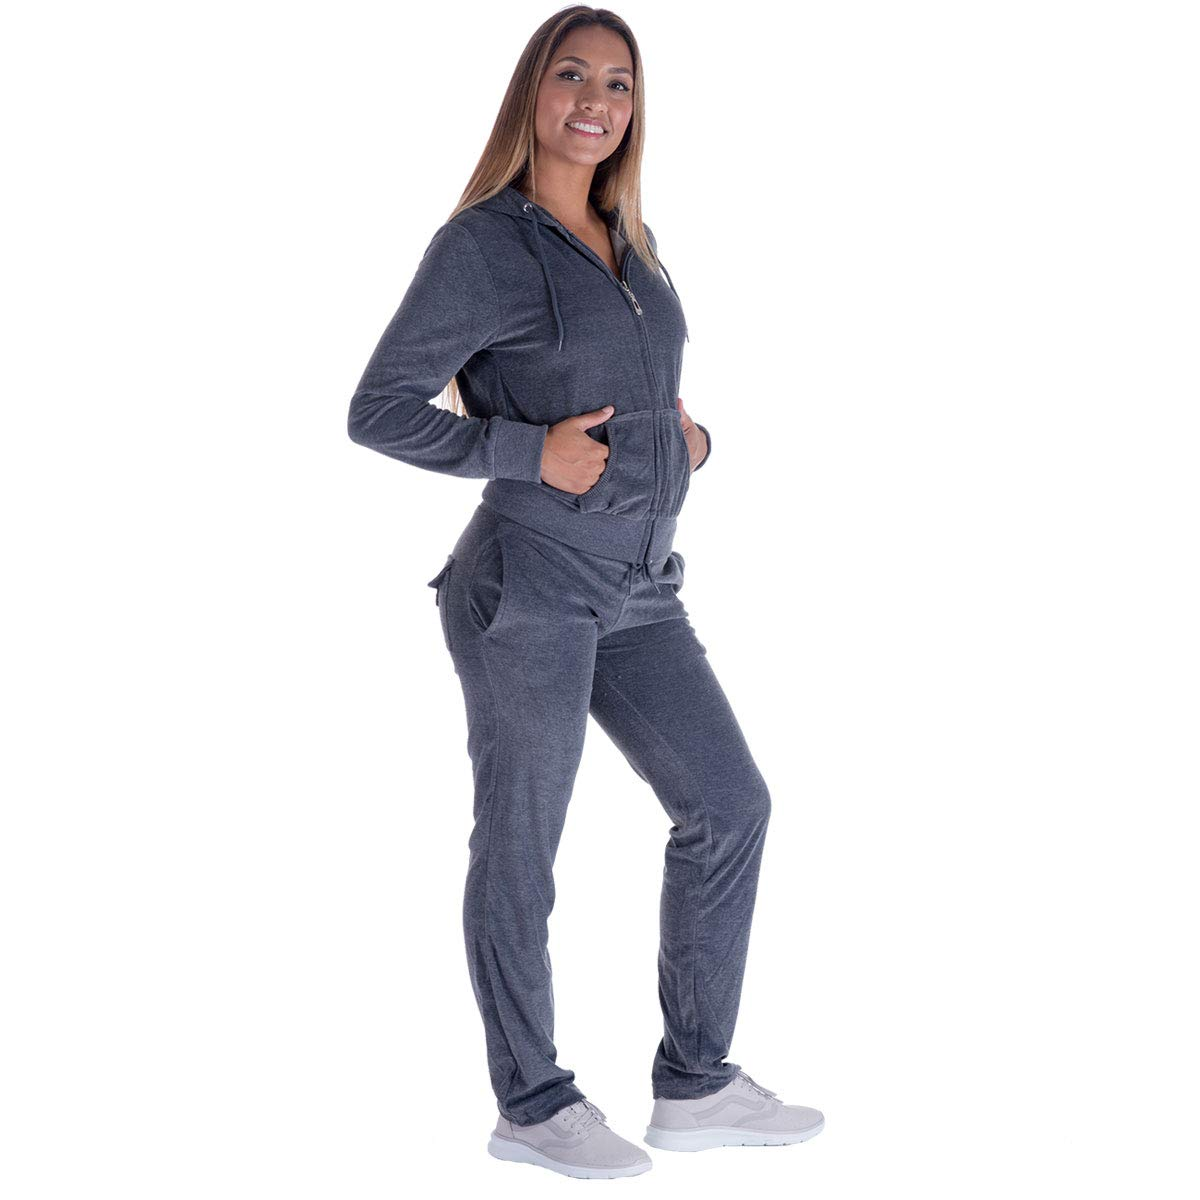 Urimoser Womens Velour Tracksuit Set Soft Sports Zip Up Hoodie and Sweat Pants 2 Pieces Sweatsuits